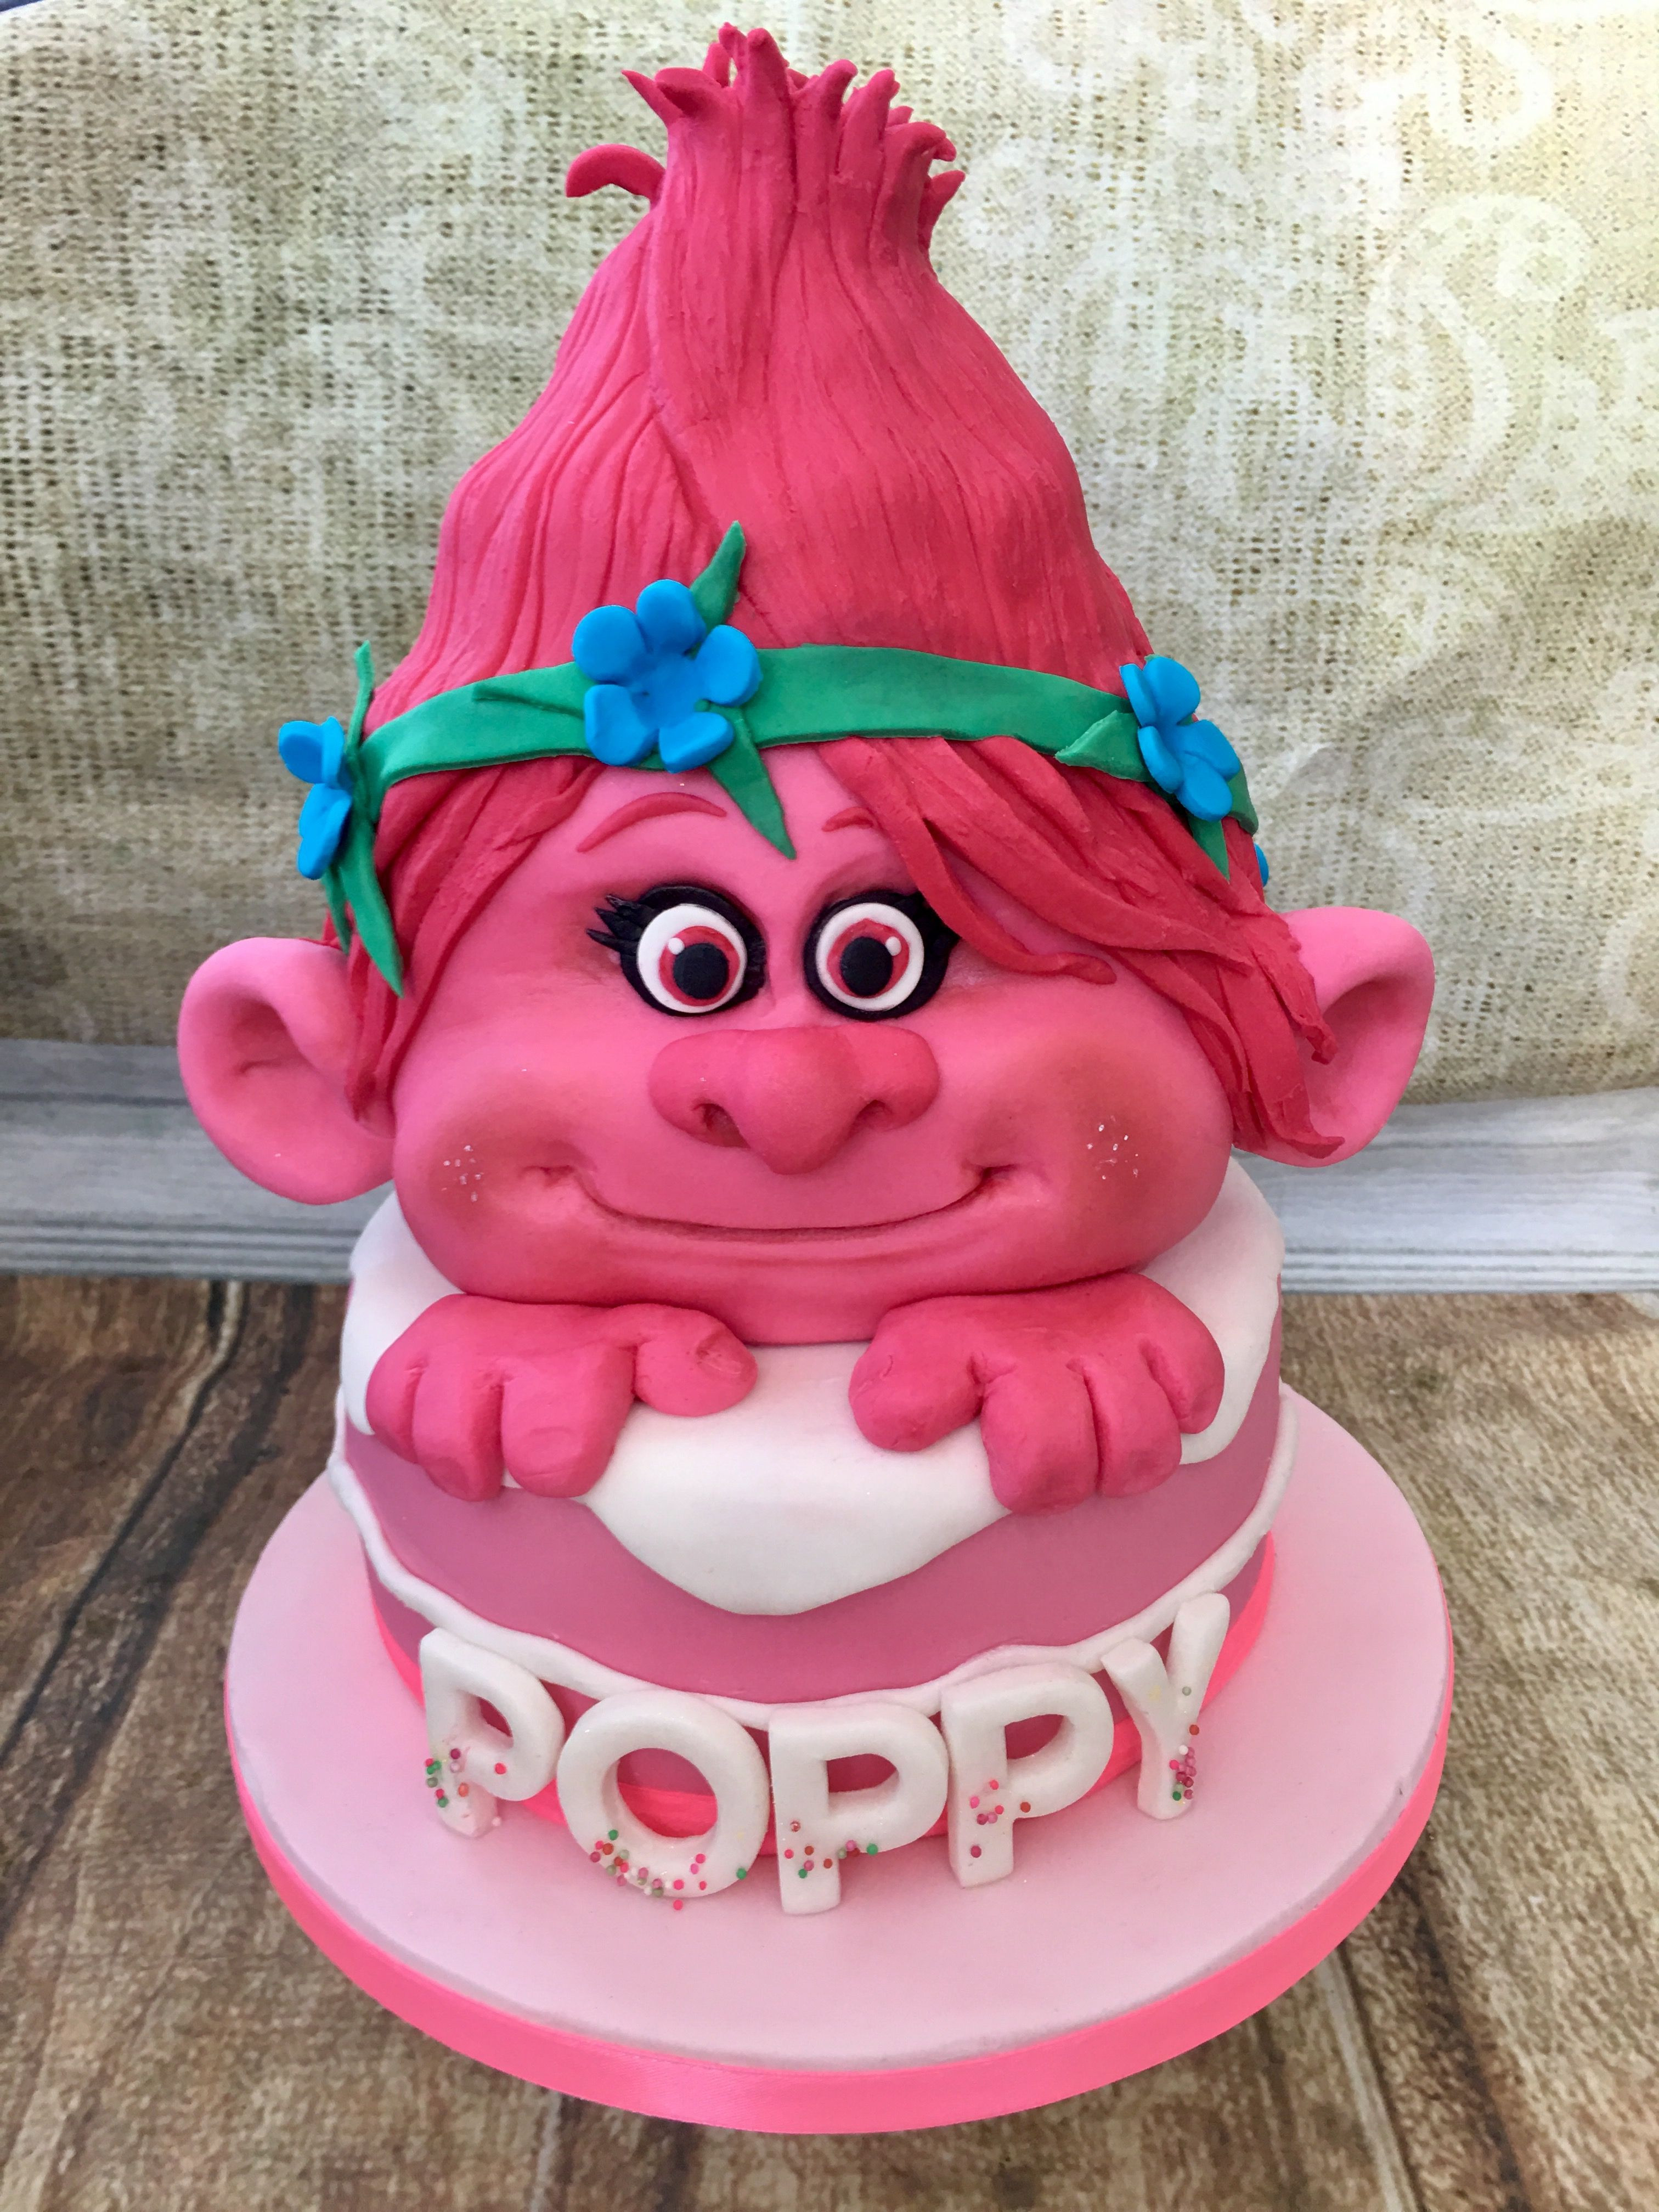 Best ideas about Poppy Troll Birthday Cake . Save or Pin Princess poppy troll birthday cake By Helen backhouse Now.